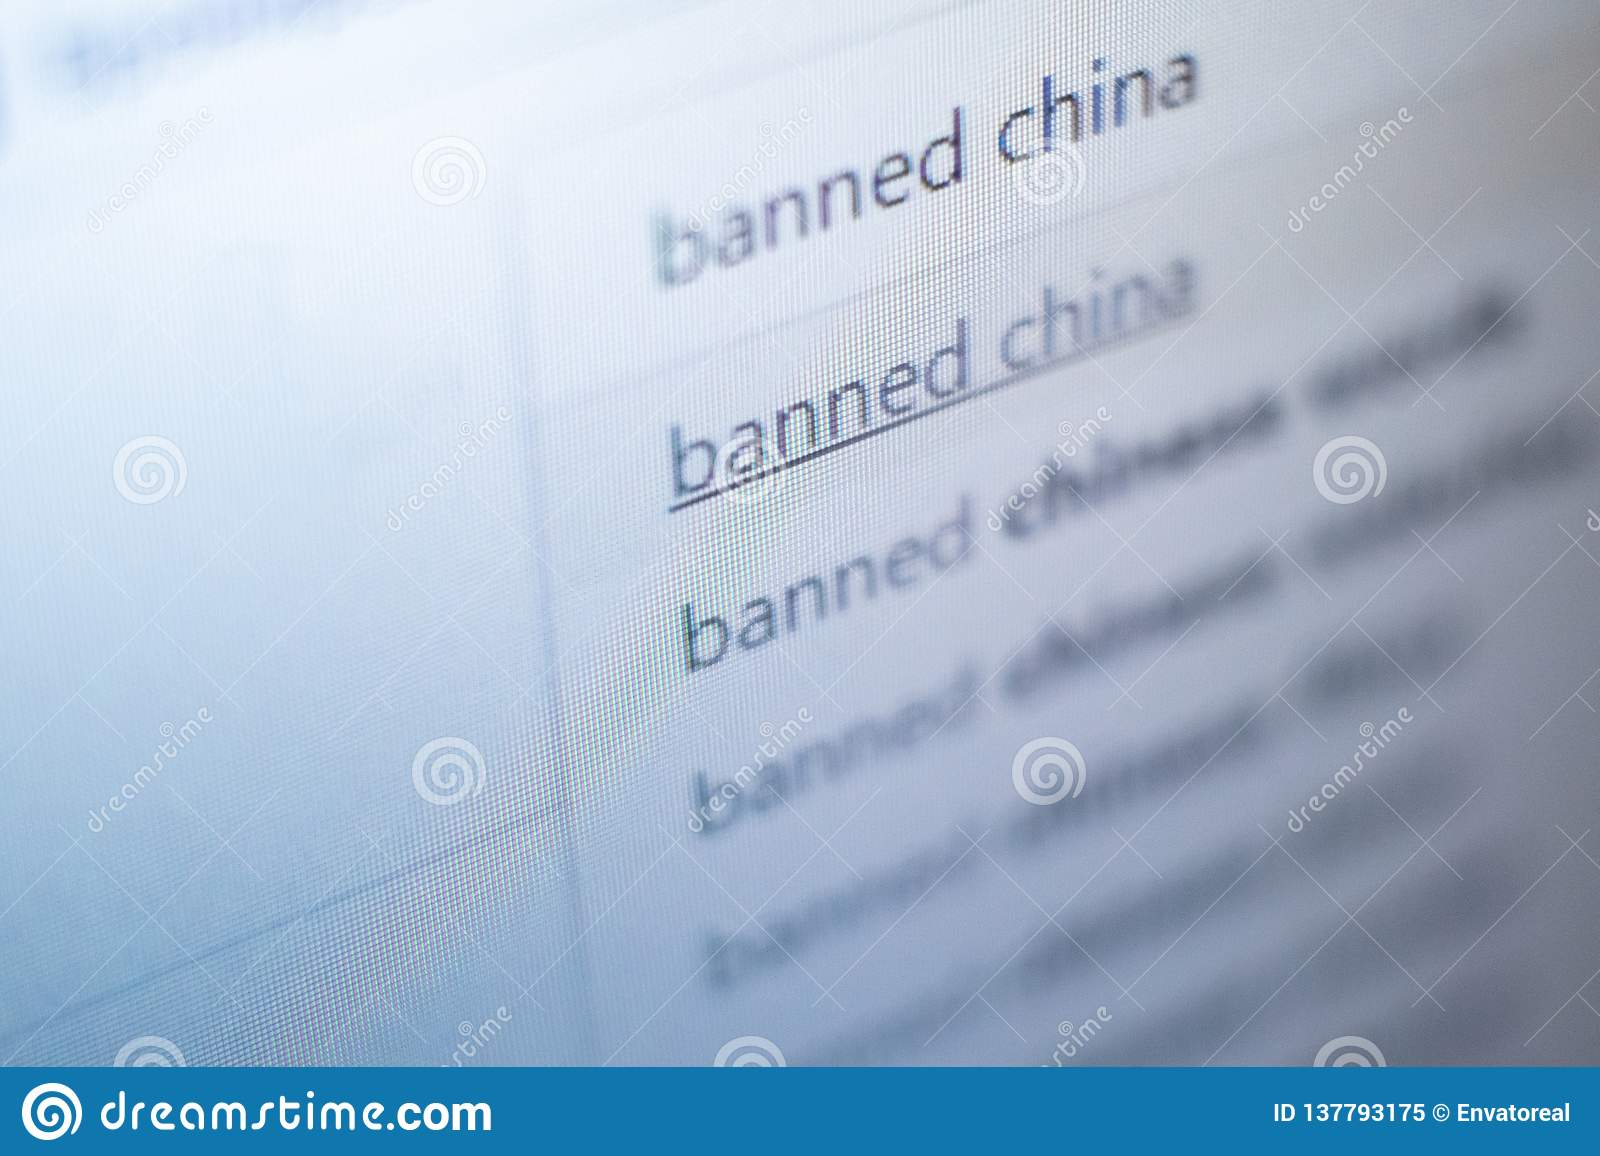 Banned China - the inscription on the monitor screen. Search query on the site. The concept of international sanctions